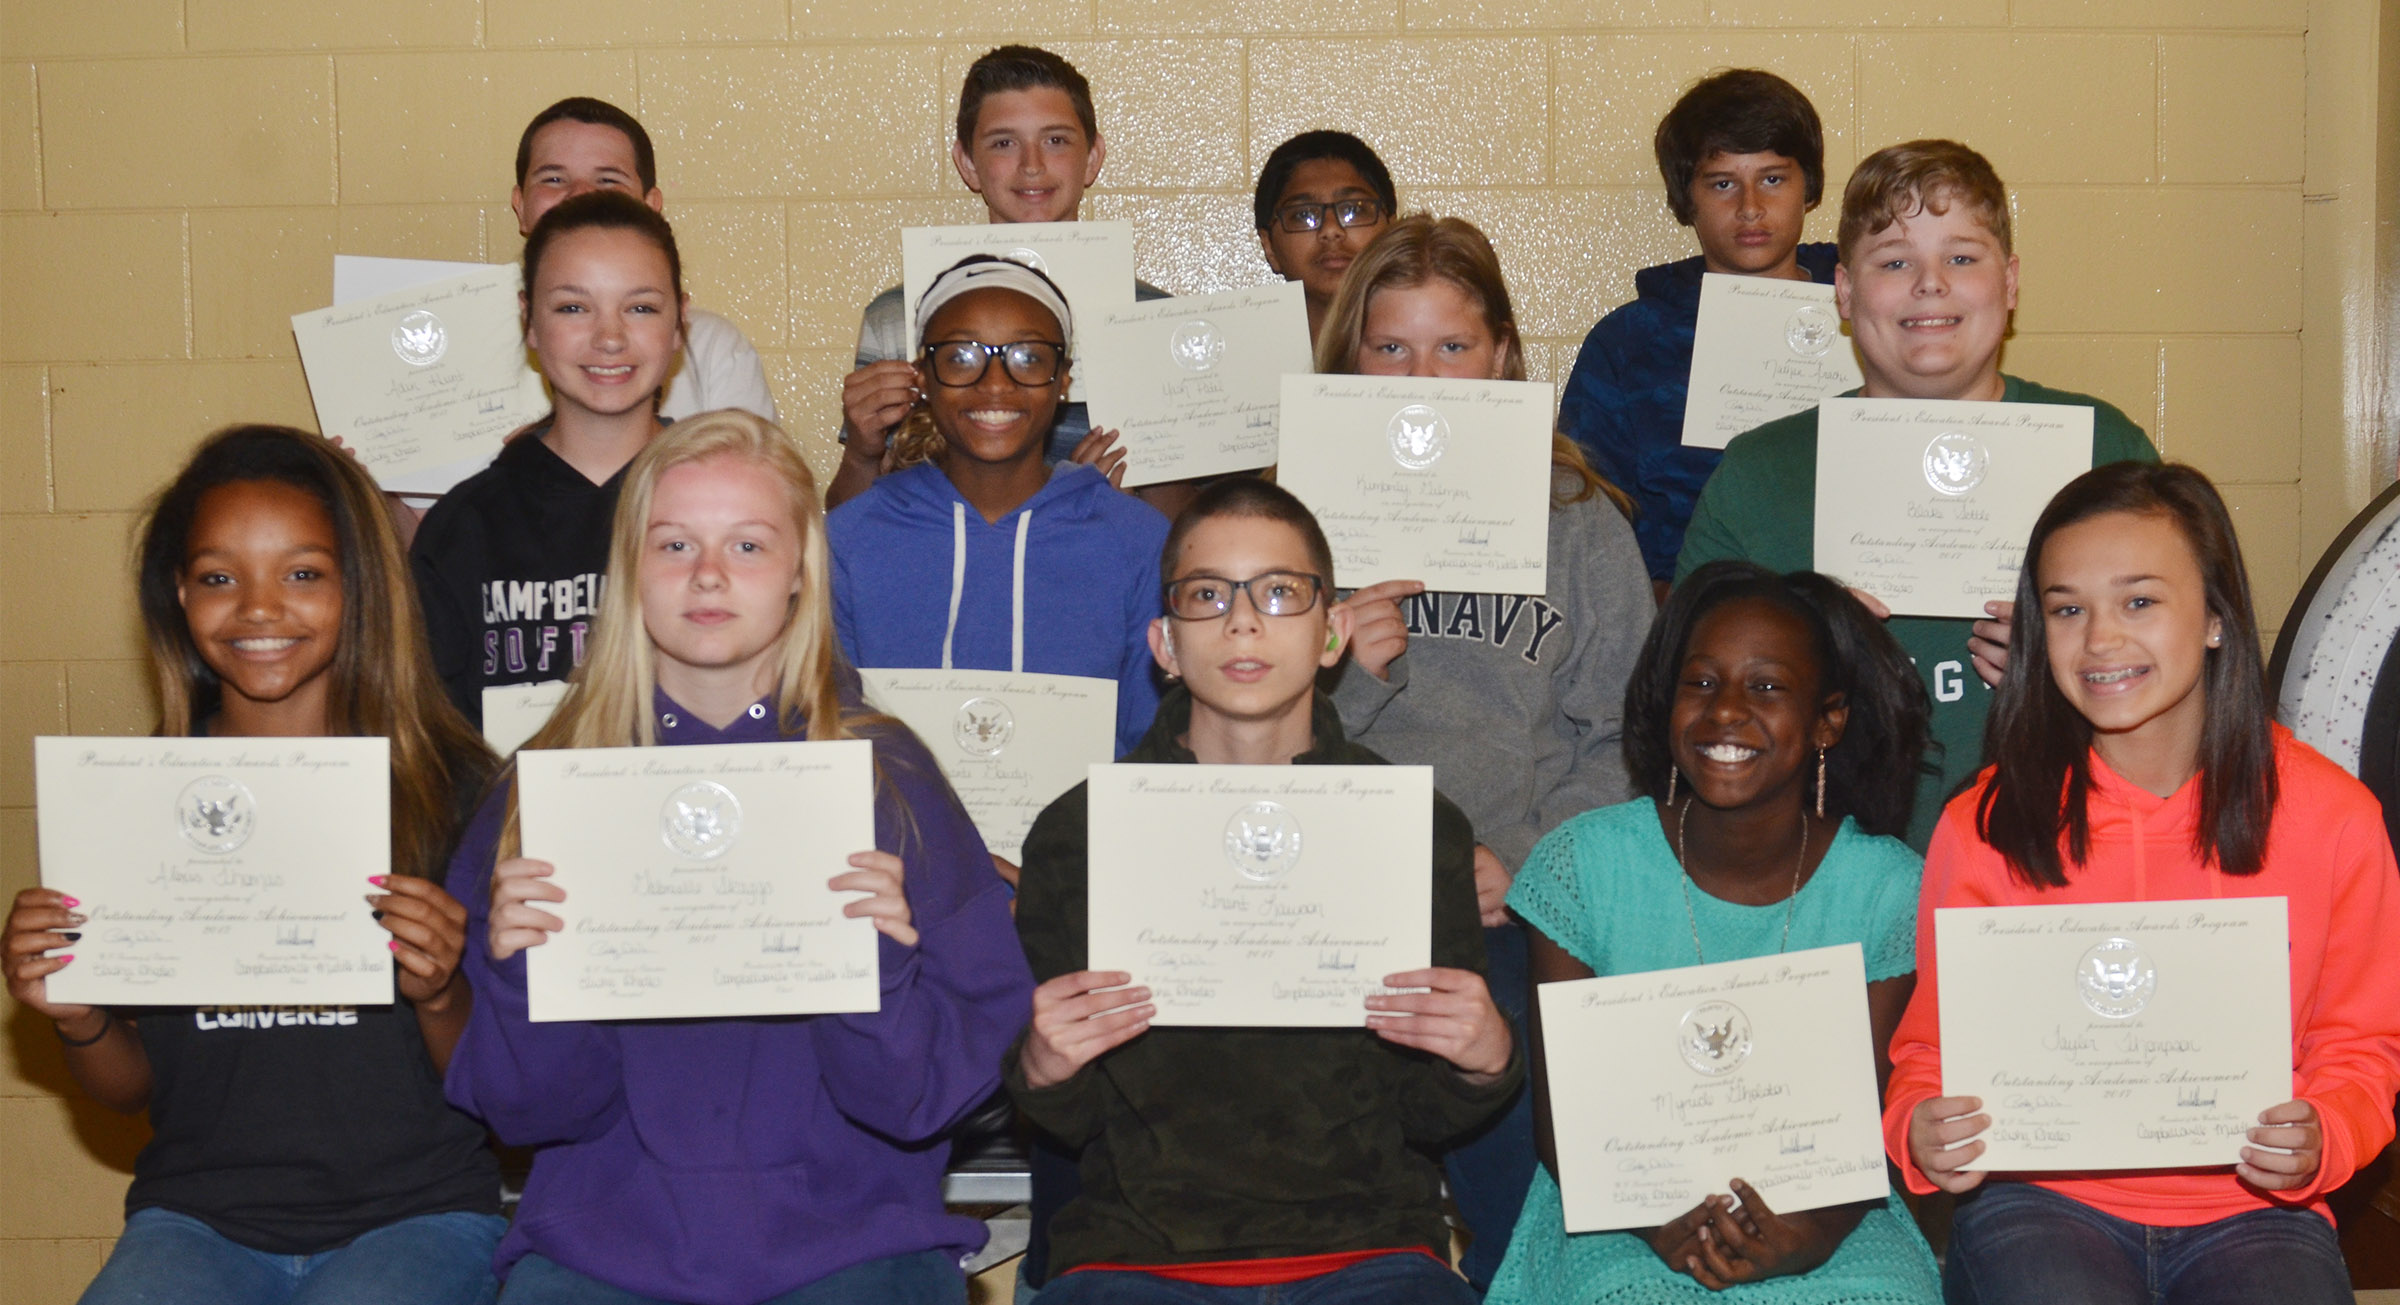 Seventh-grade president's award for educational achievement winners are, from left, front, Alexis Thomas, Gabby Skaggs, Grant Lawson, Myricle Gholston and Tayler Thompson. Second row, Karley Morris, Bri Gowdy, Kimberly Gilmerr and Blake Settle. Back, Adin Hunt, Caden Cowherd, Yash Patel and Nate Arachi.